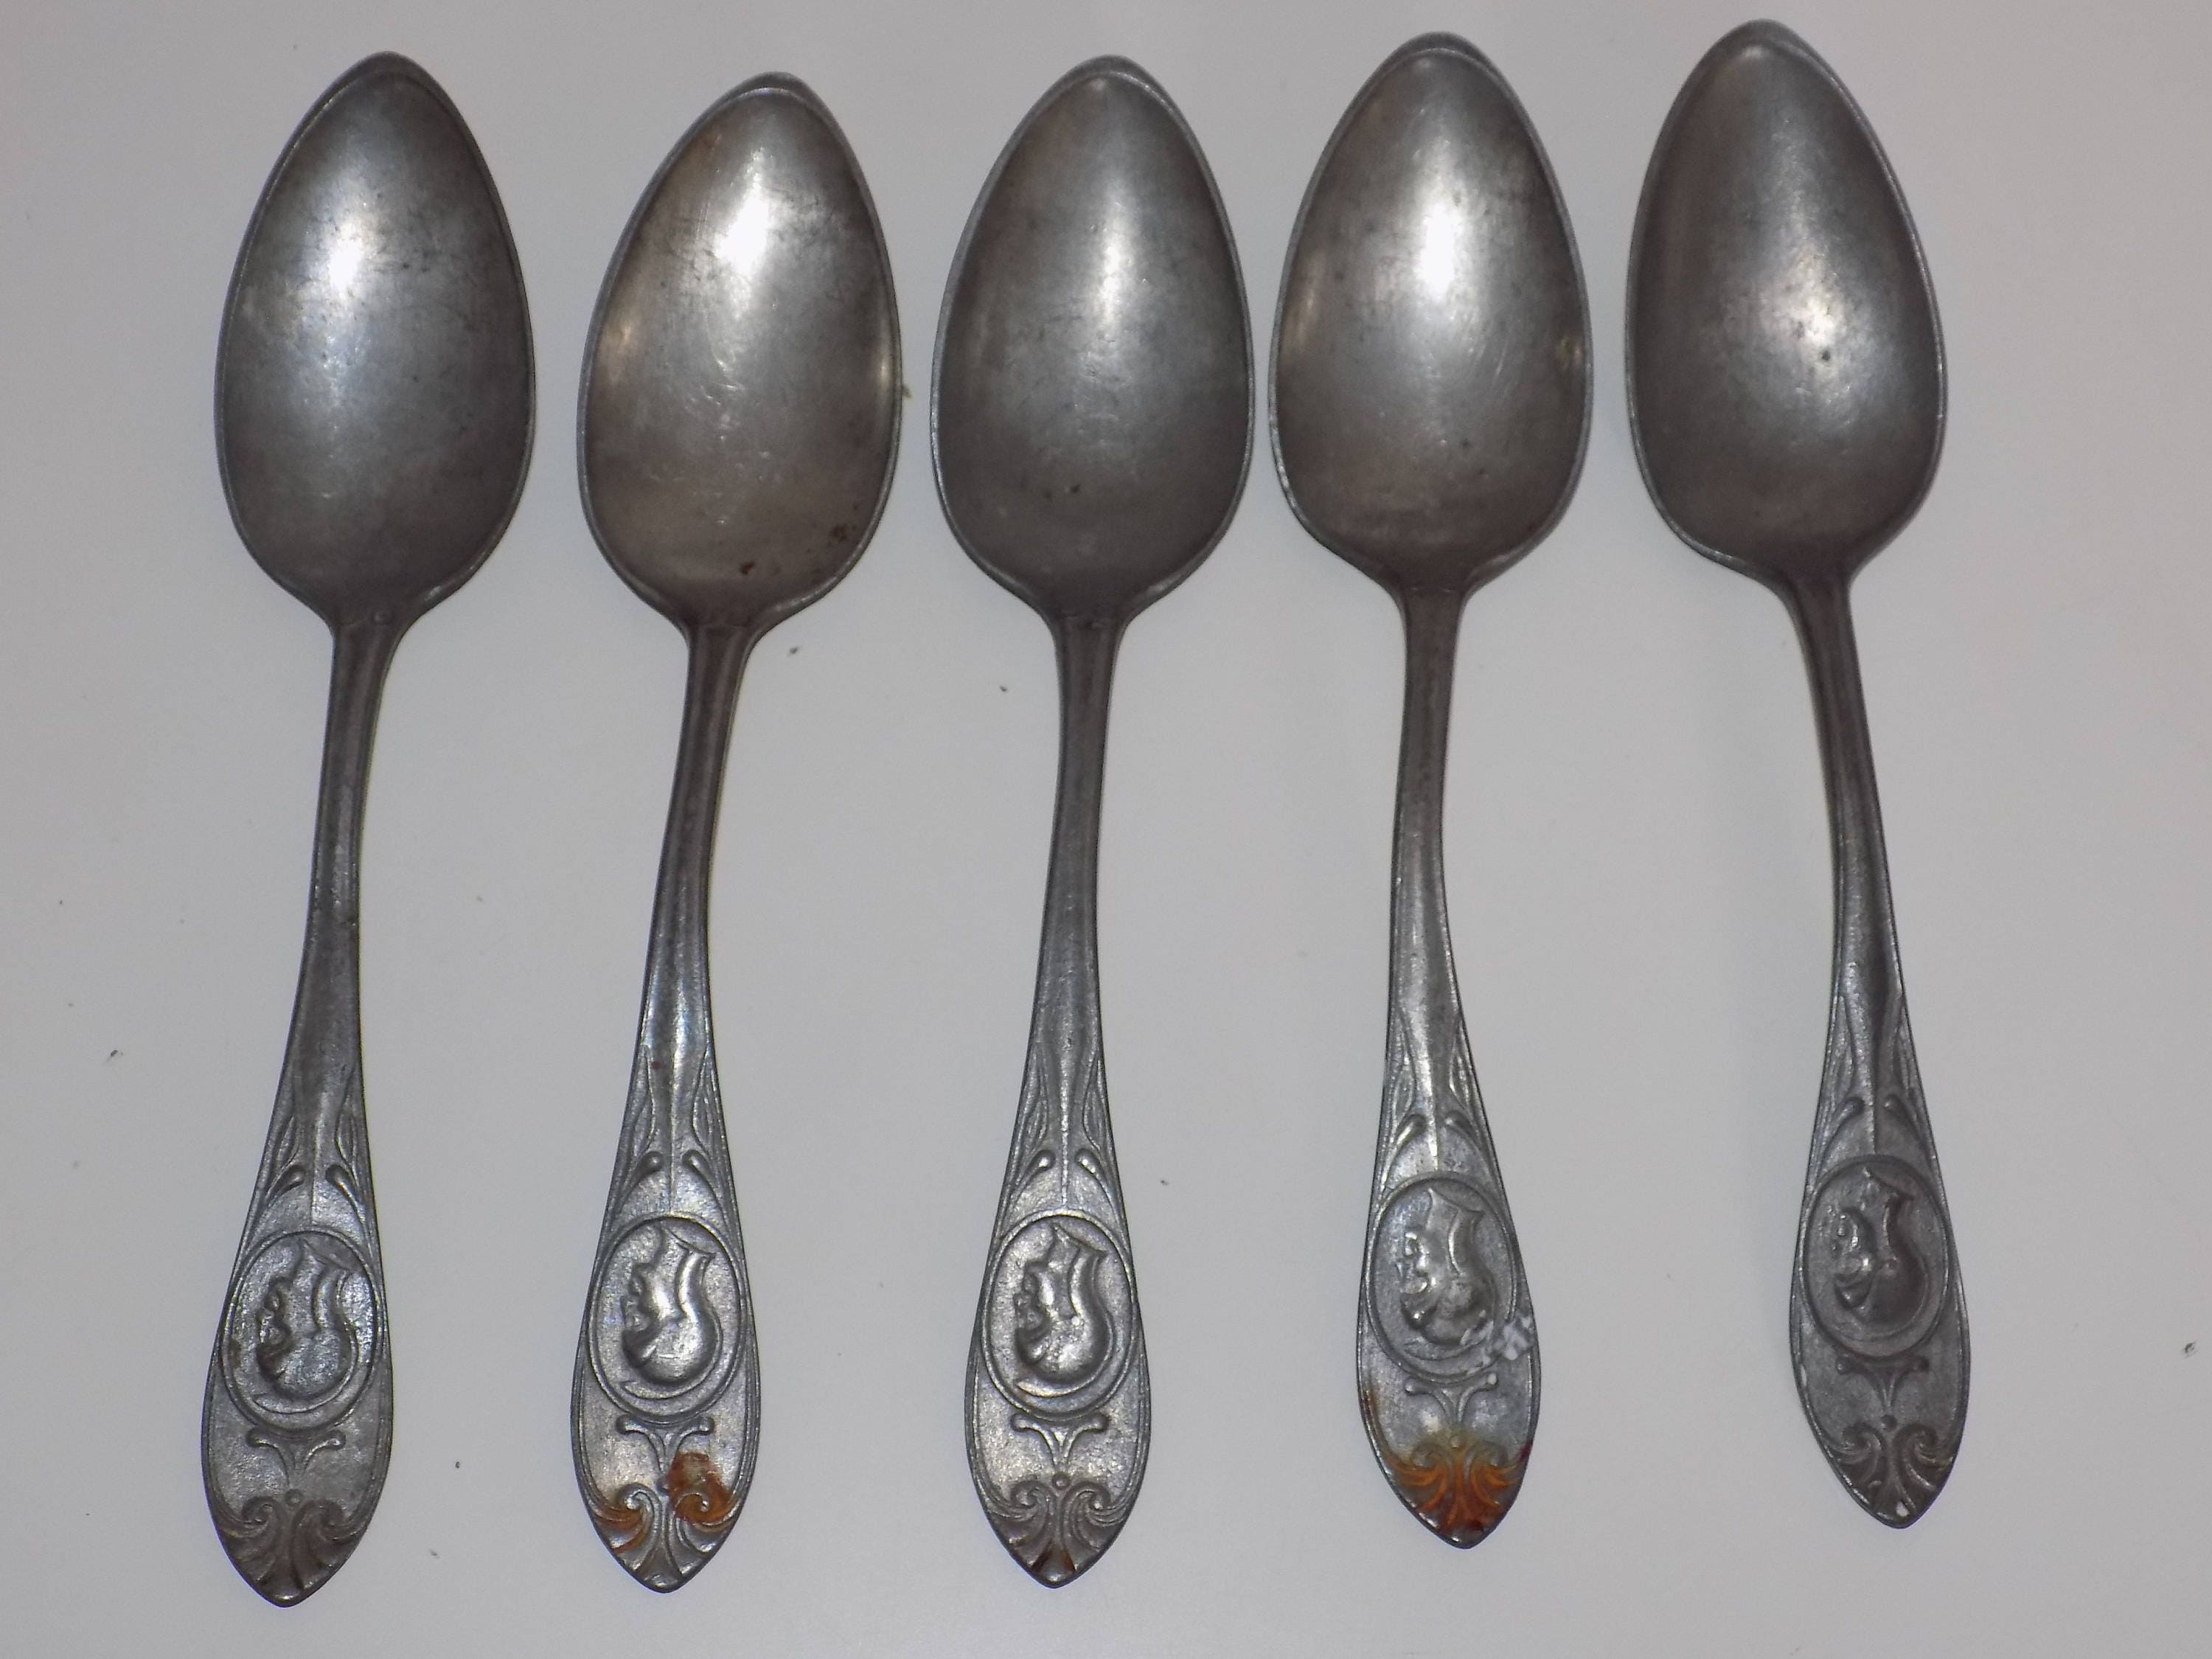 Set of 5 Pewter Spoons Soldier Profile